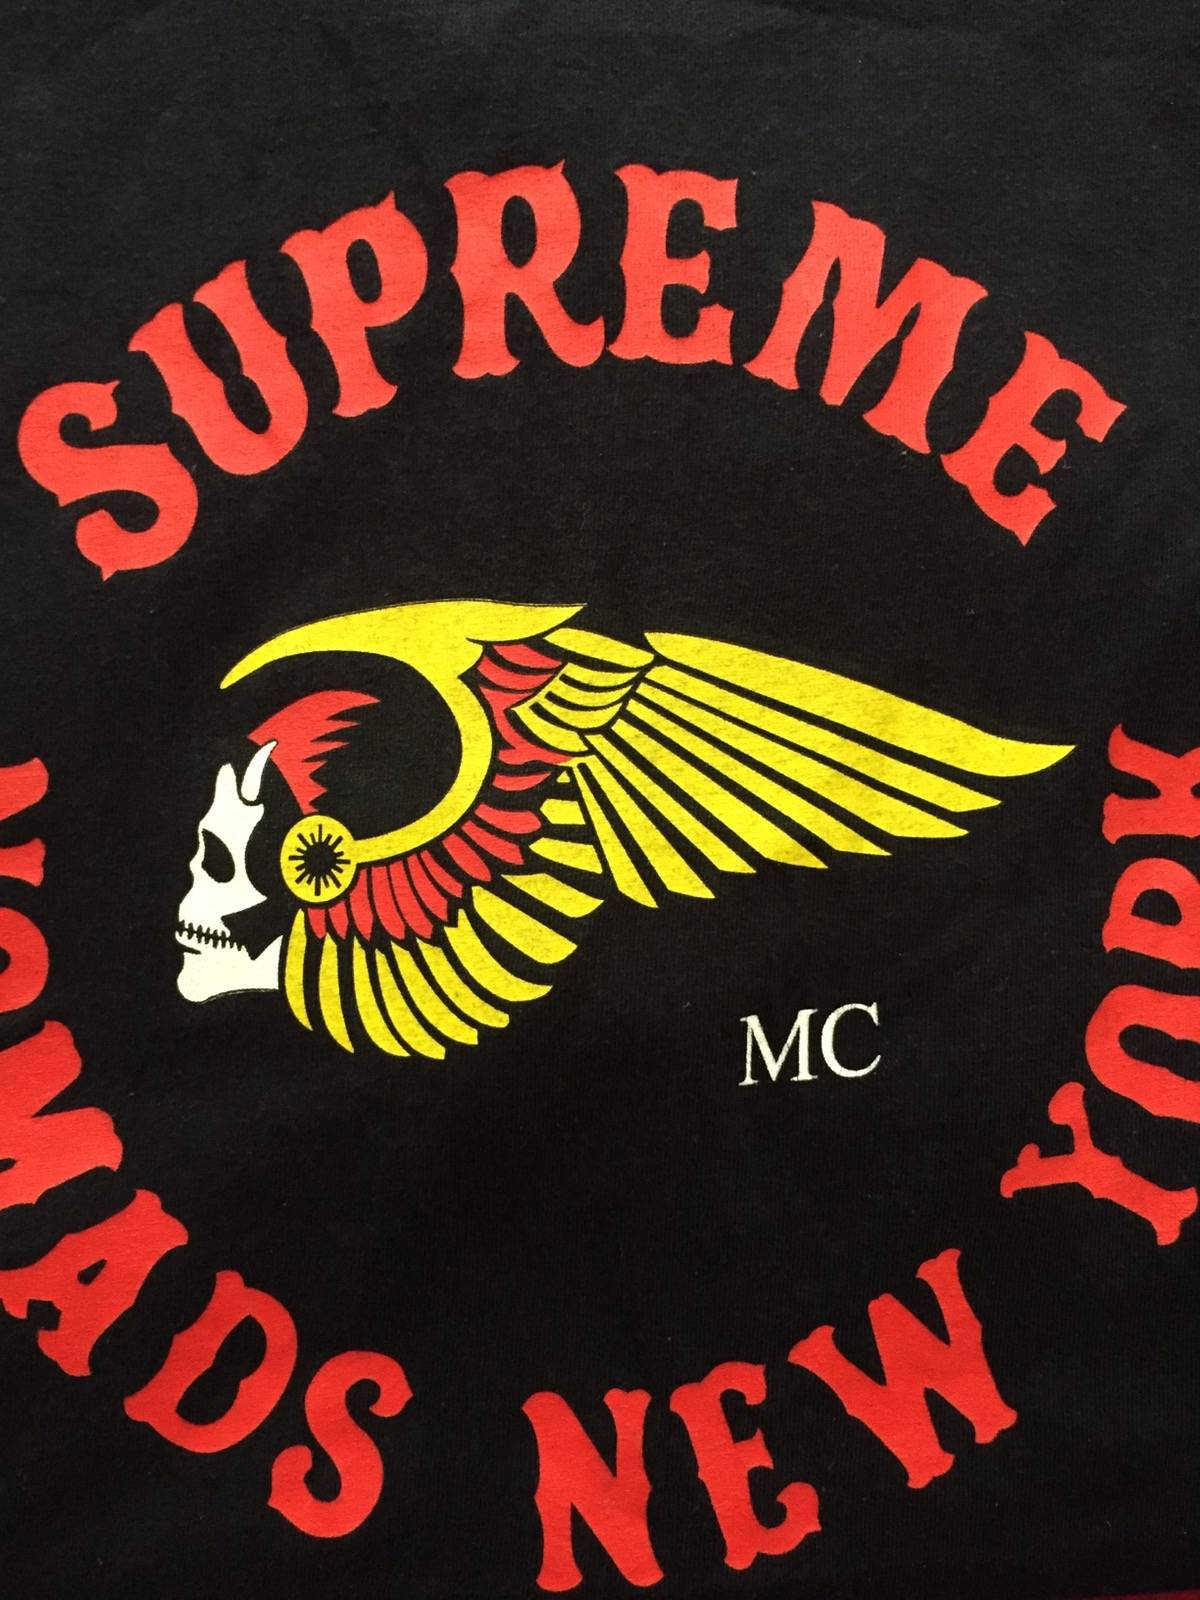 Supreme Supreme Nomads hells Angels New York Tee Shirt  Grailed